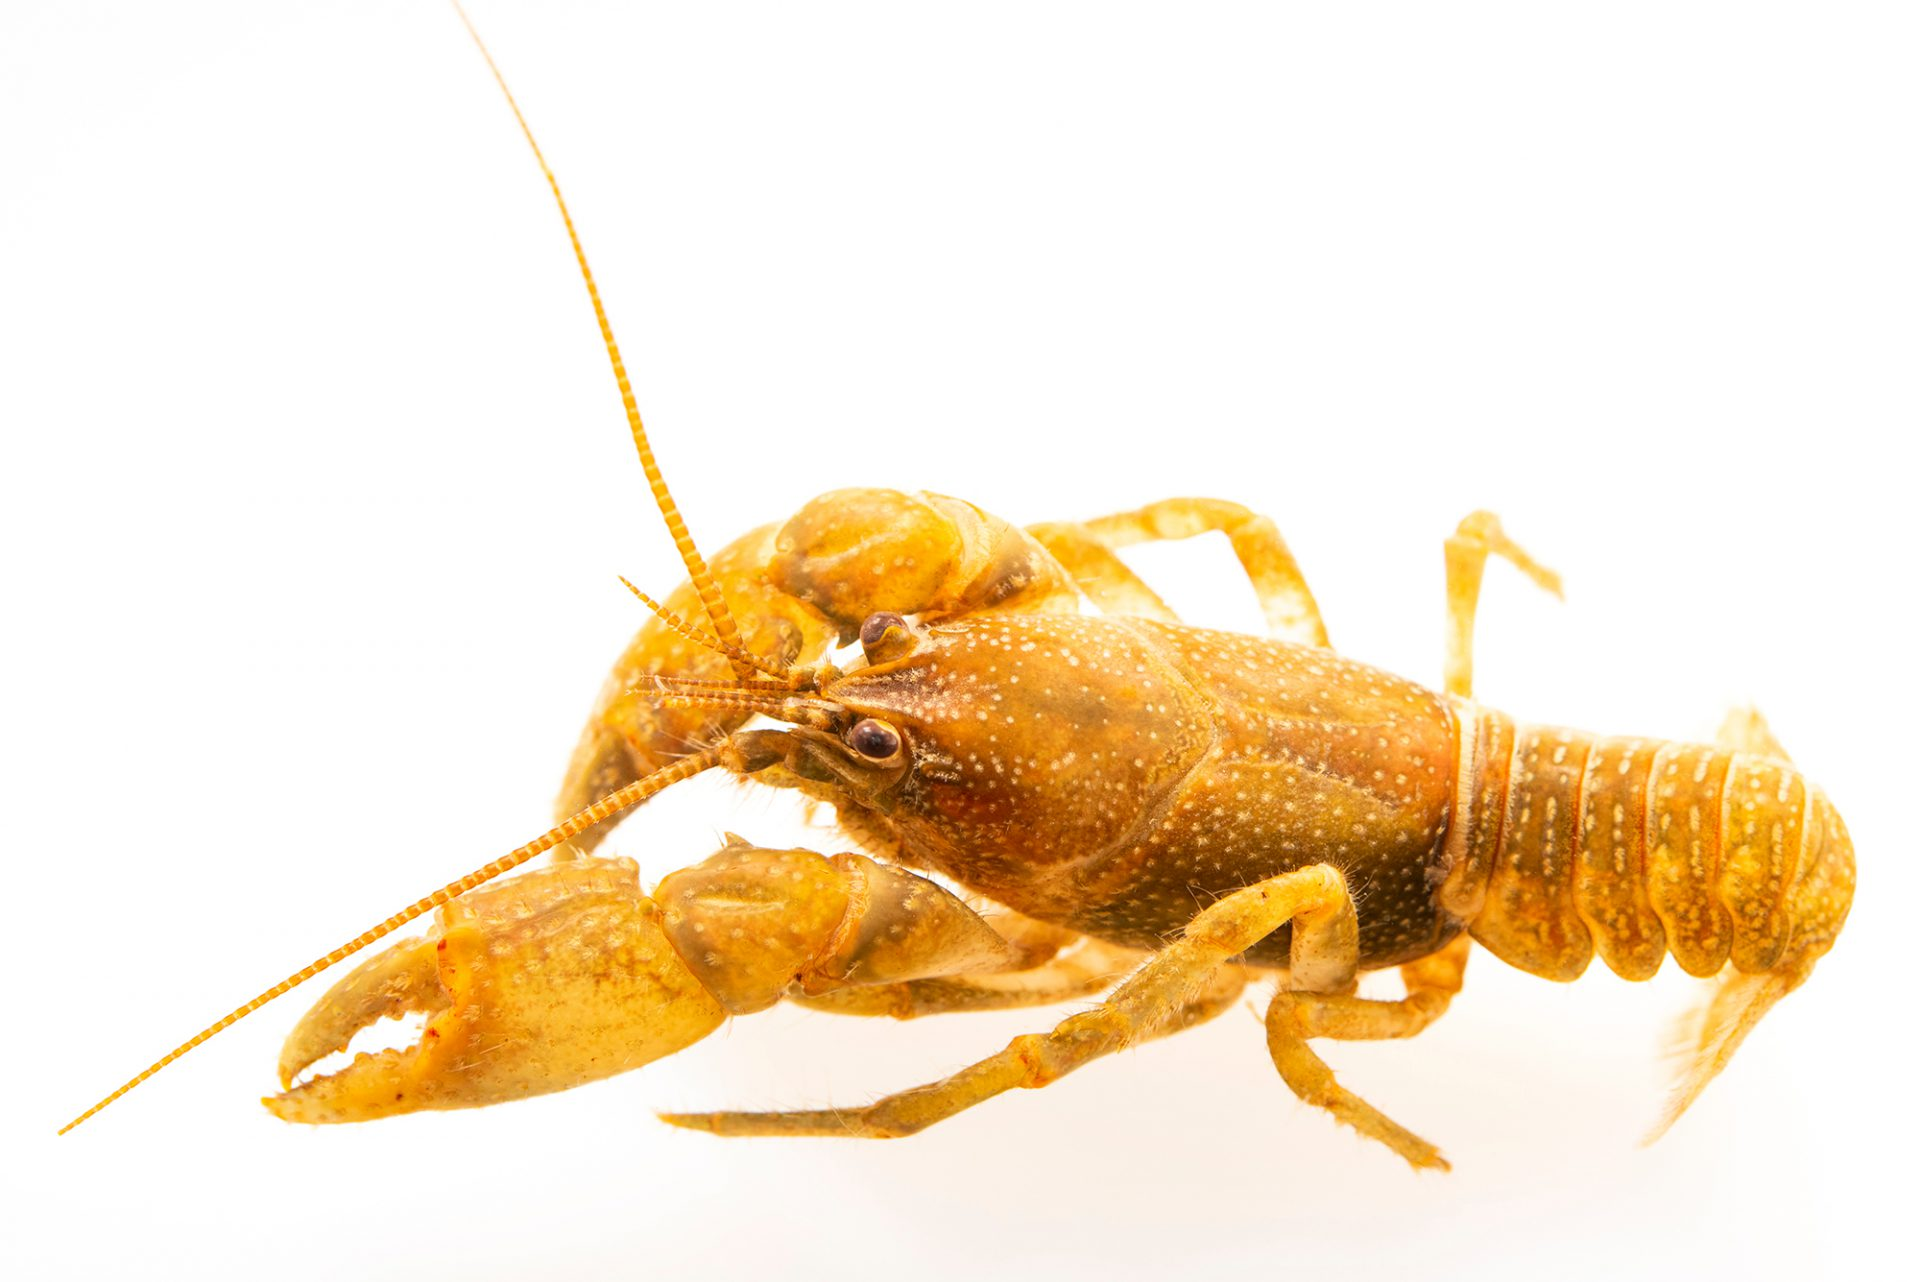 Photo: Brawleys Fork crayfish, Cambarus williami, at the Crayfish lab in West Liberty University in West Liberty, WV. This specimen is from Brawney Fork, TN.